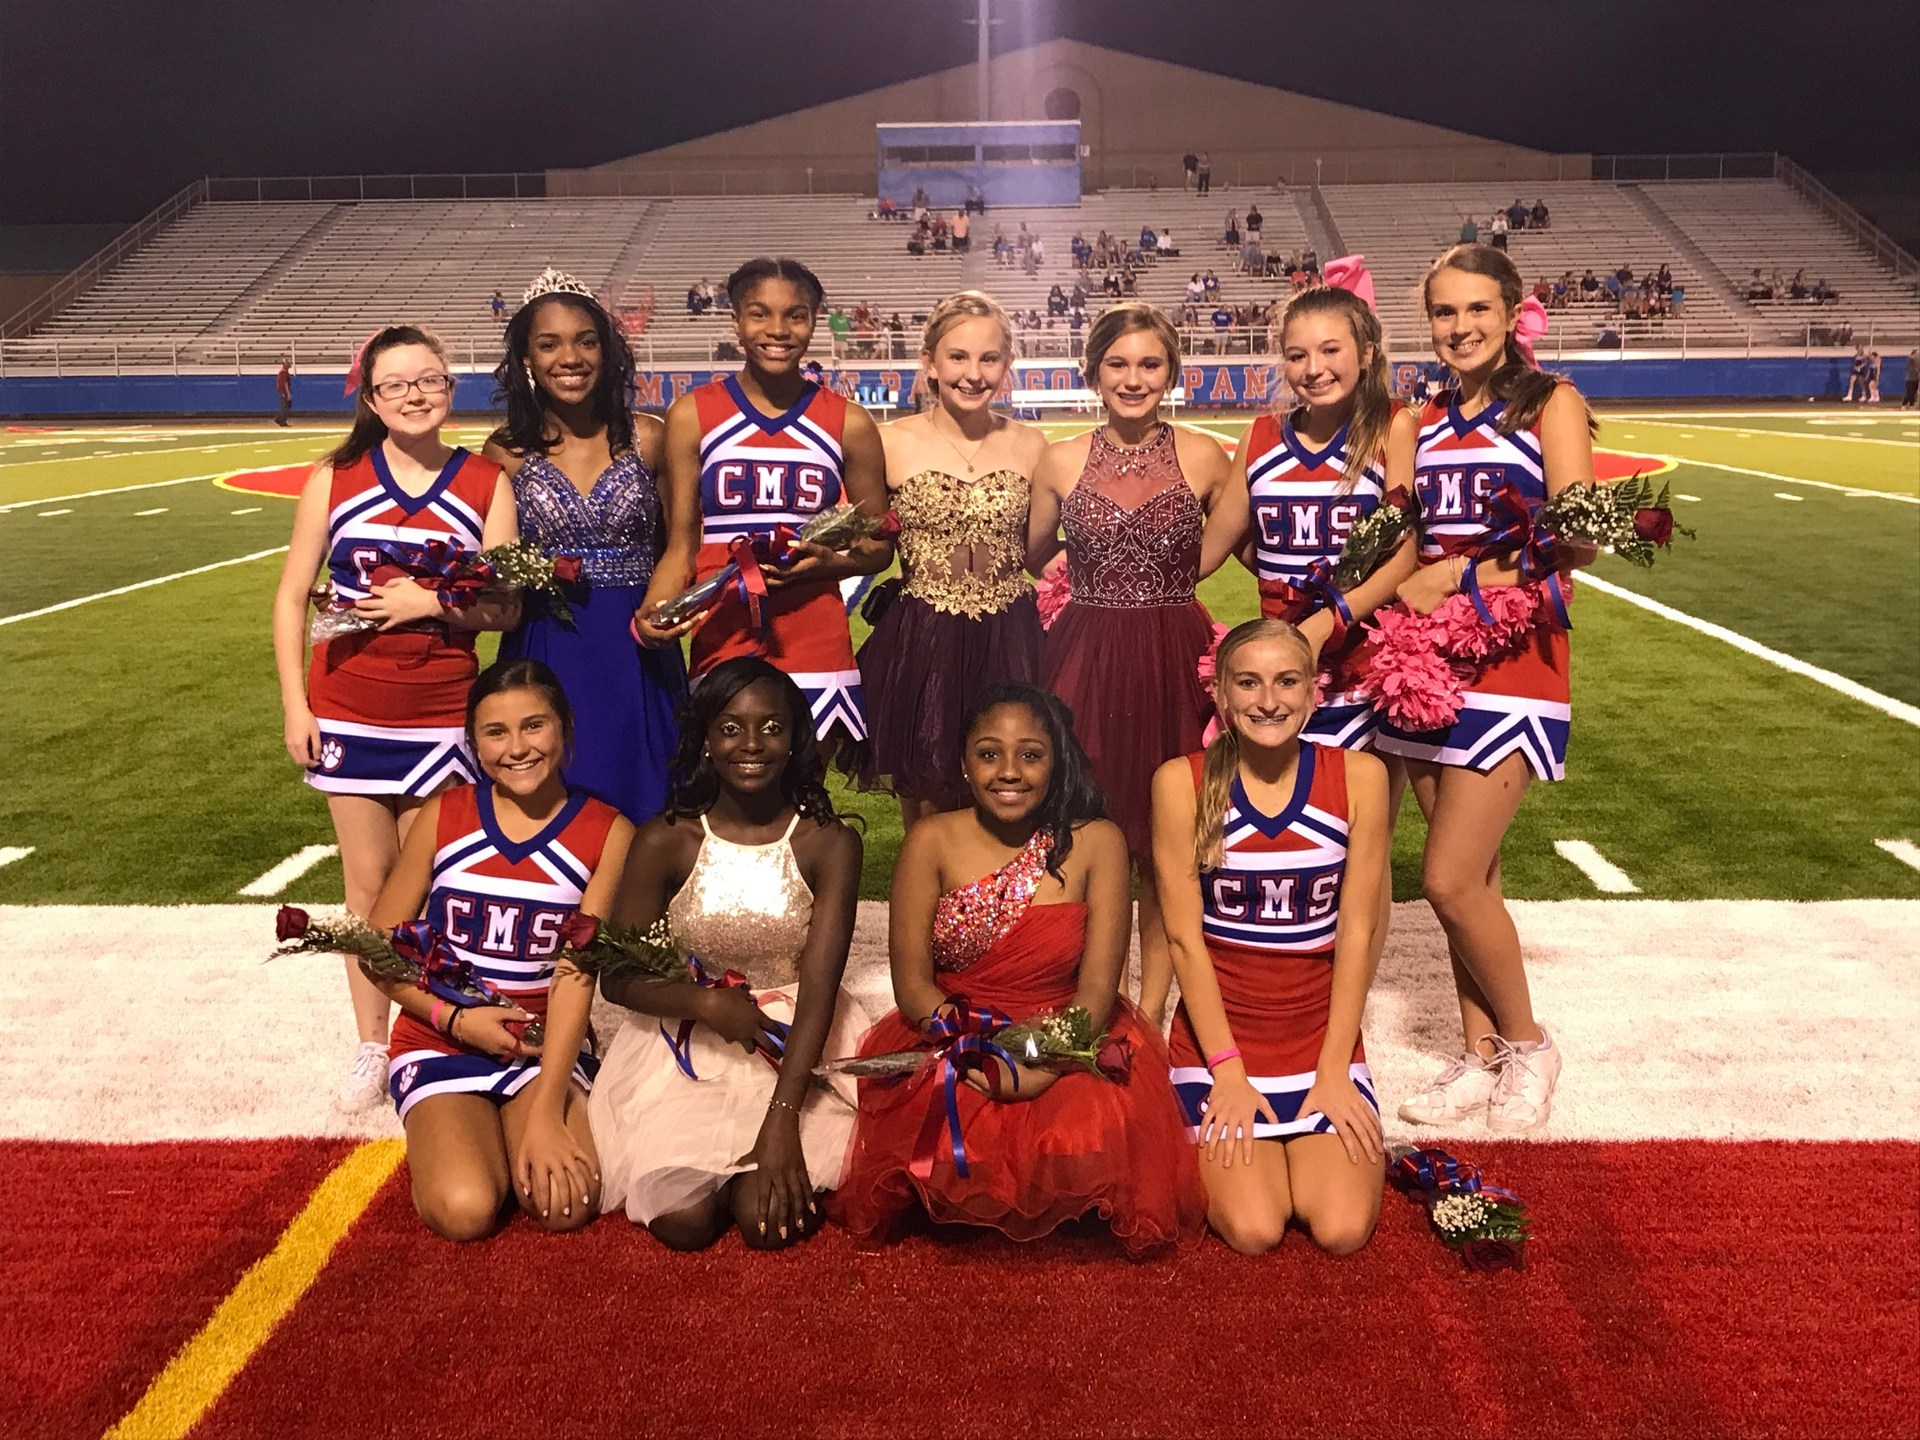 Congratulations to our Cheerleaders on Homecoming Court!